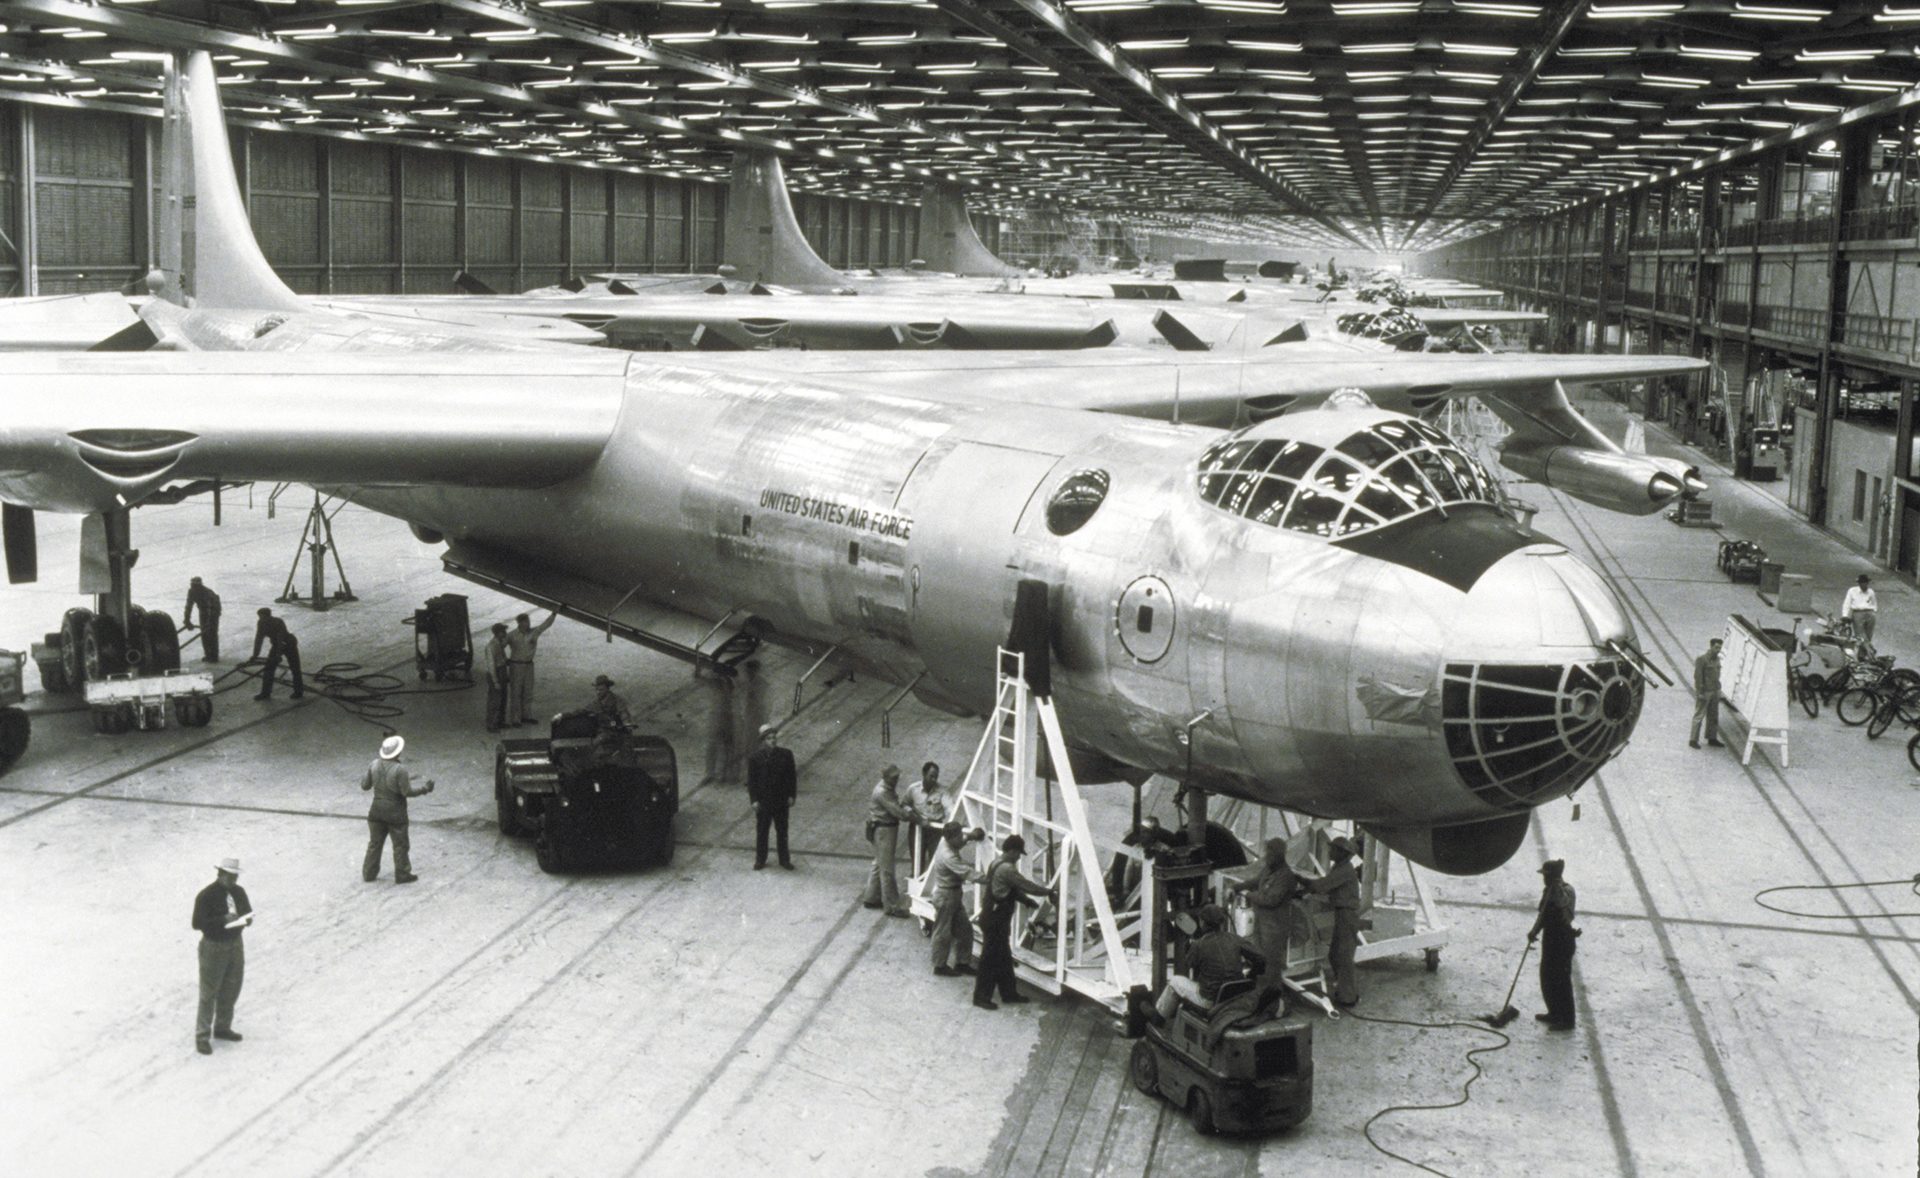 B-36 Peacemaker during production